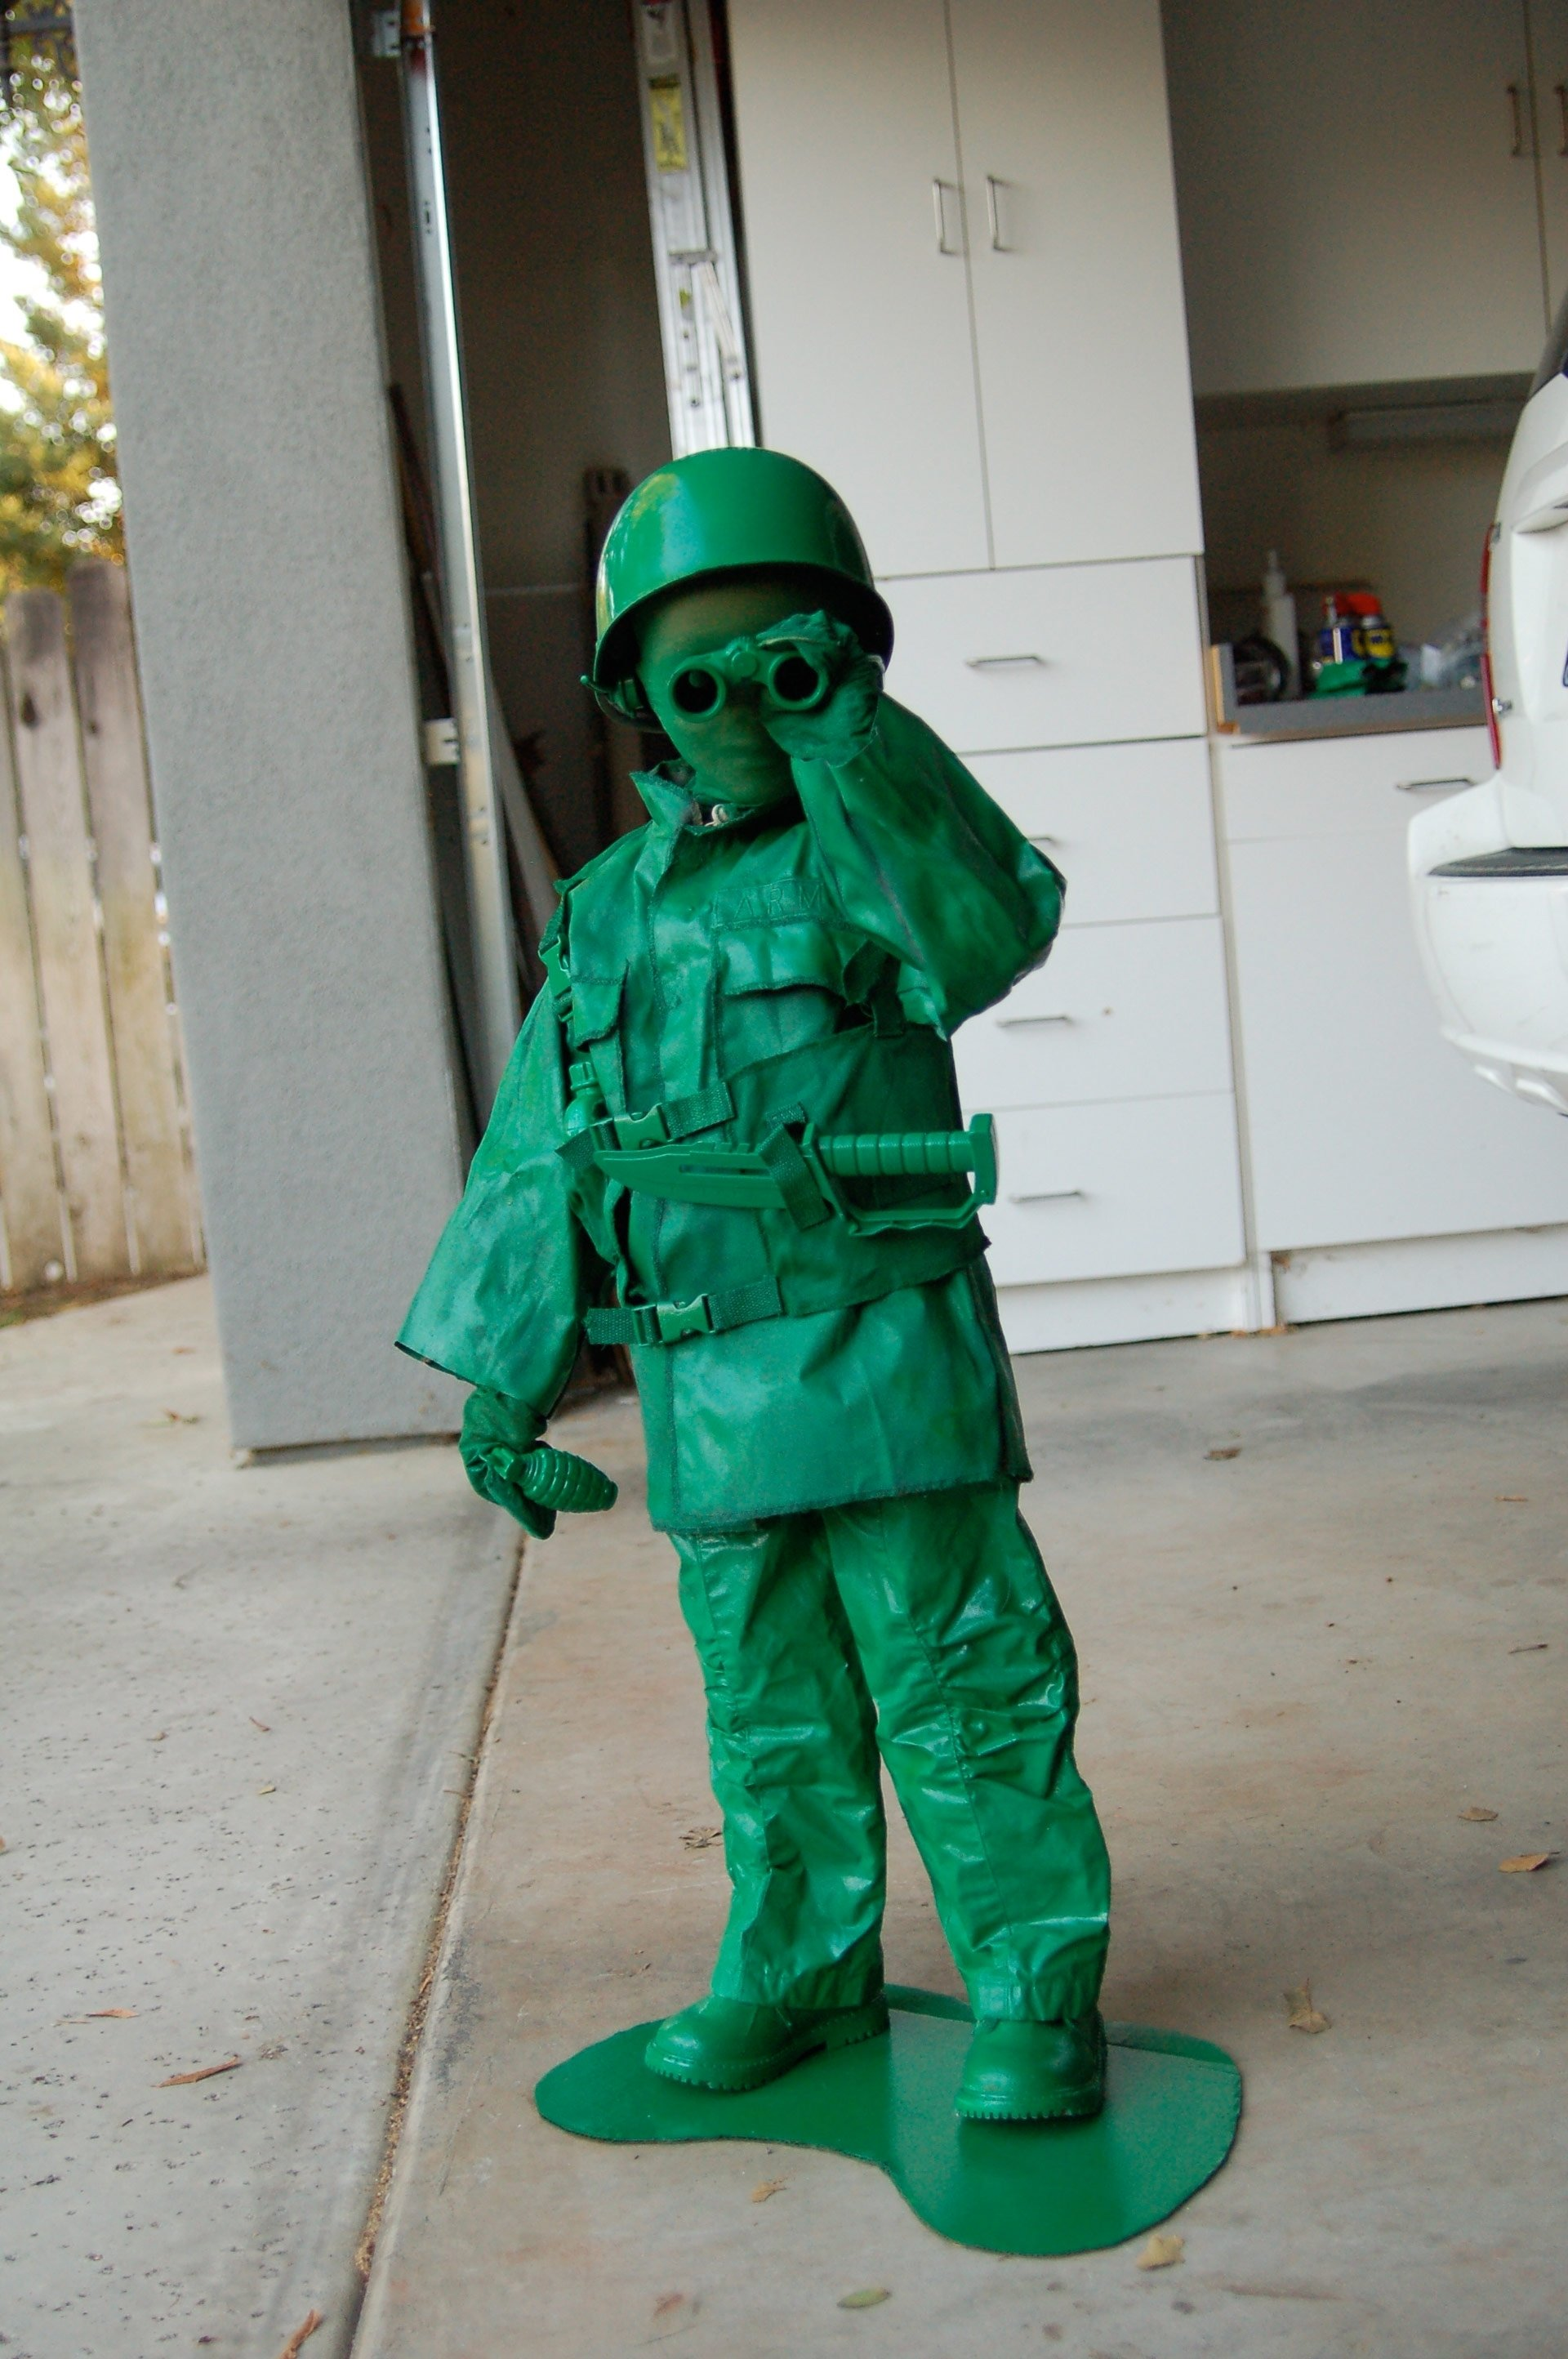 10 Amazing Halloween Costume Ideas For Boys 62 utterly adorable homemade halloween costumes for kids army men 1 2020